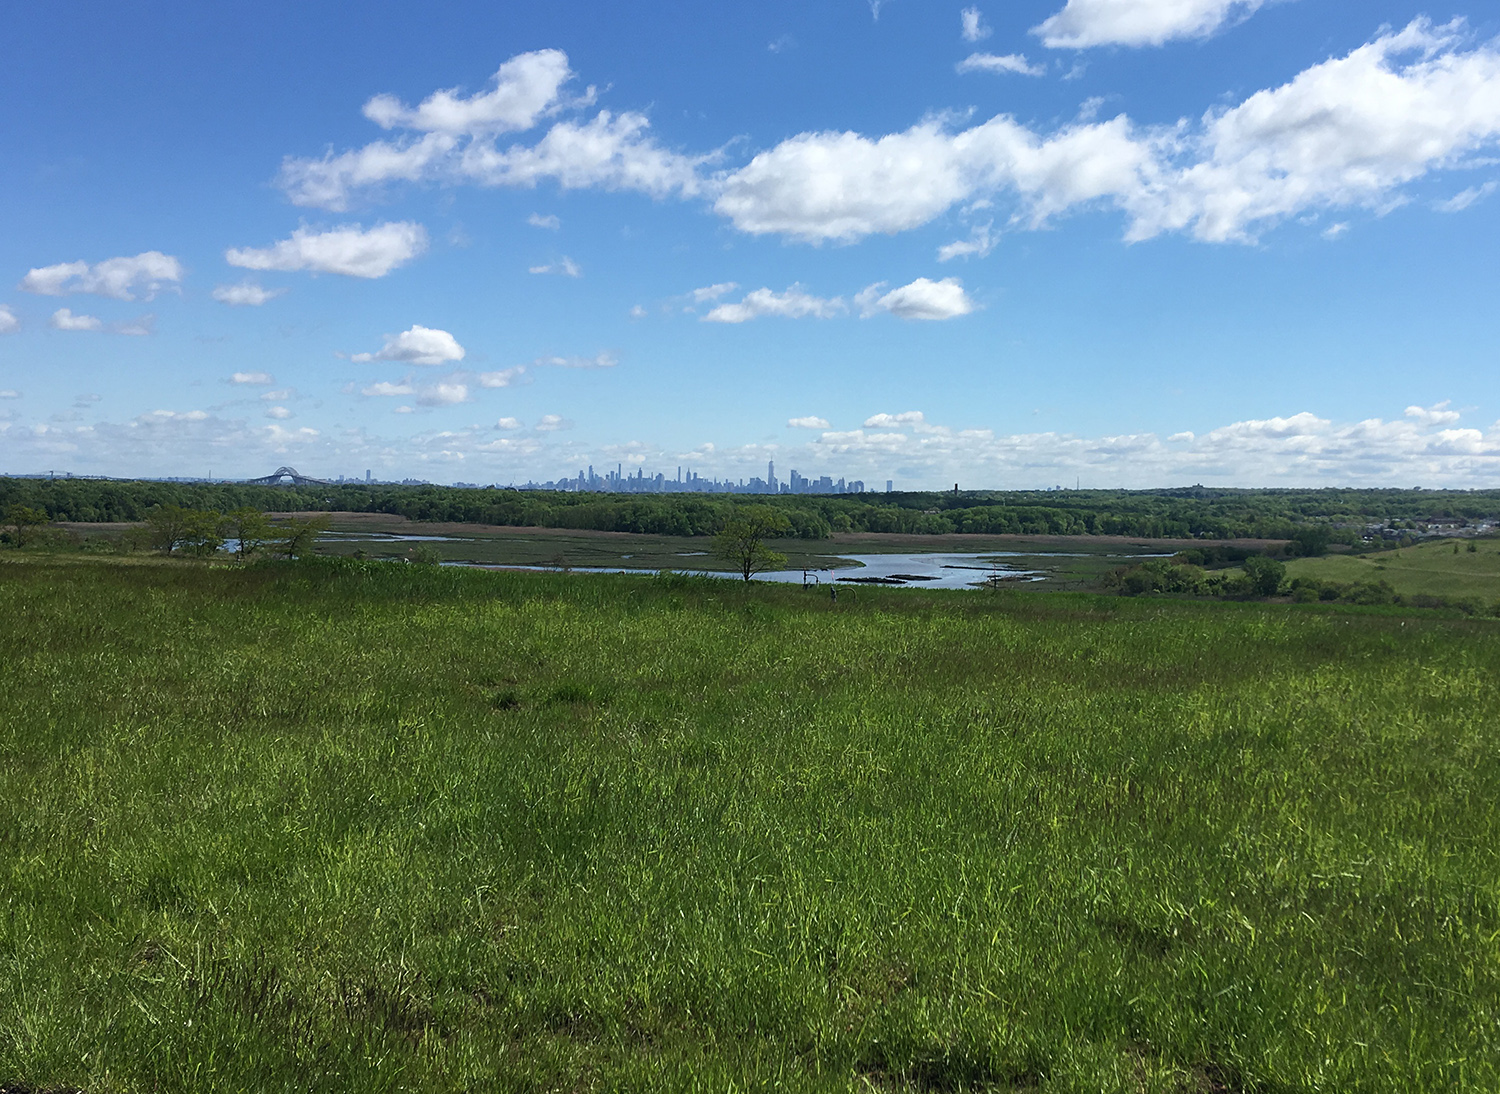 FRESHKILLS PARK - MAY 15th • STATEN ISLAND